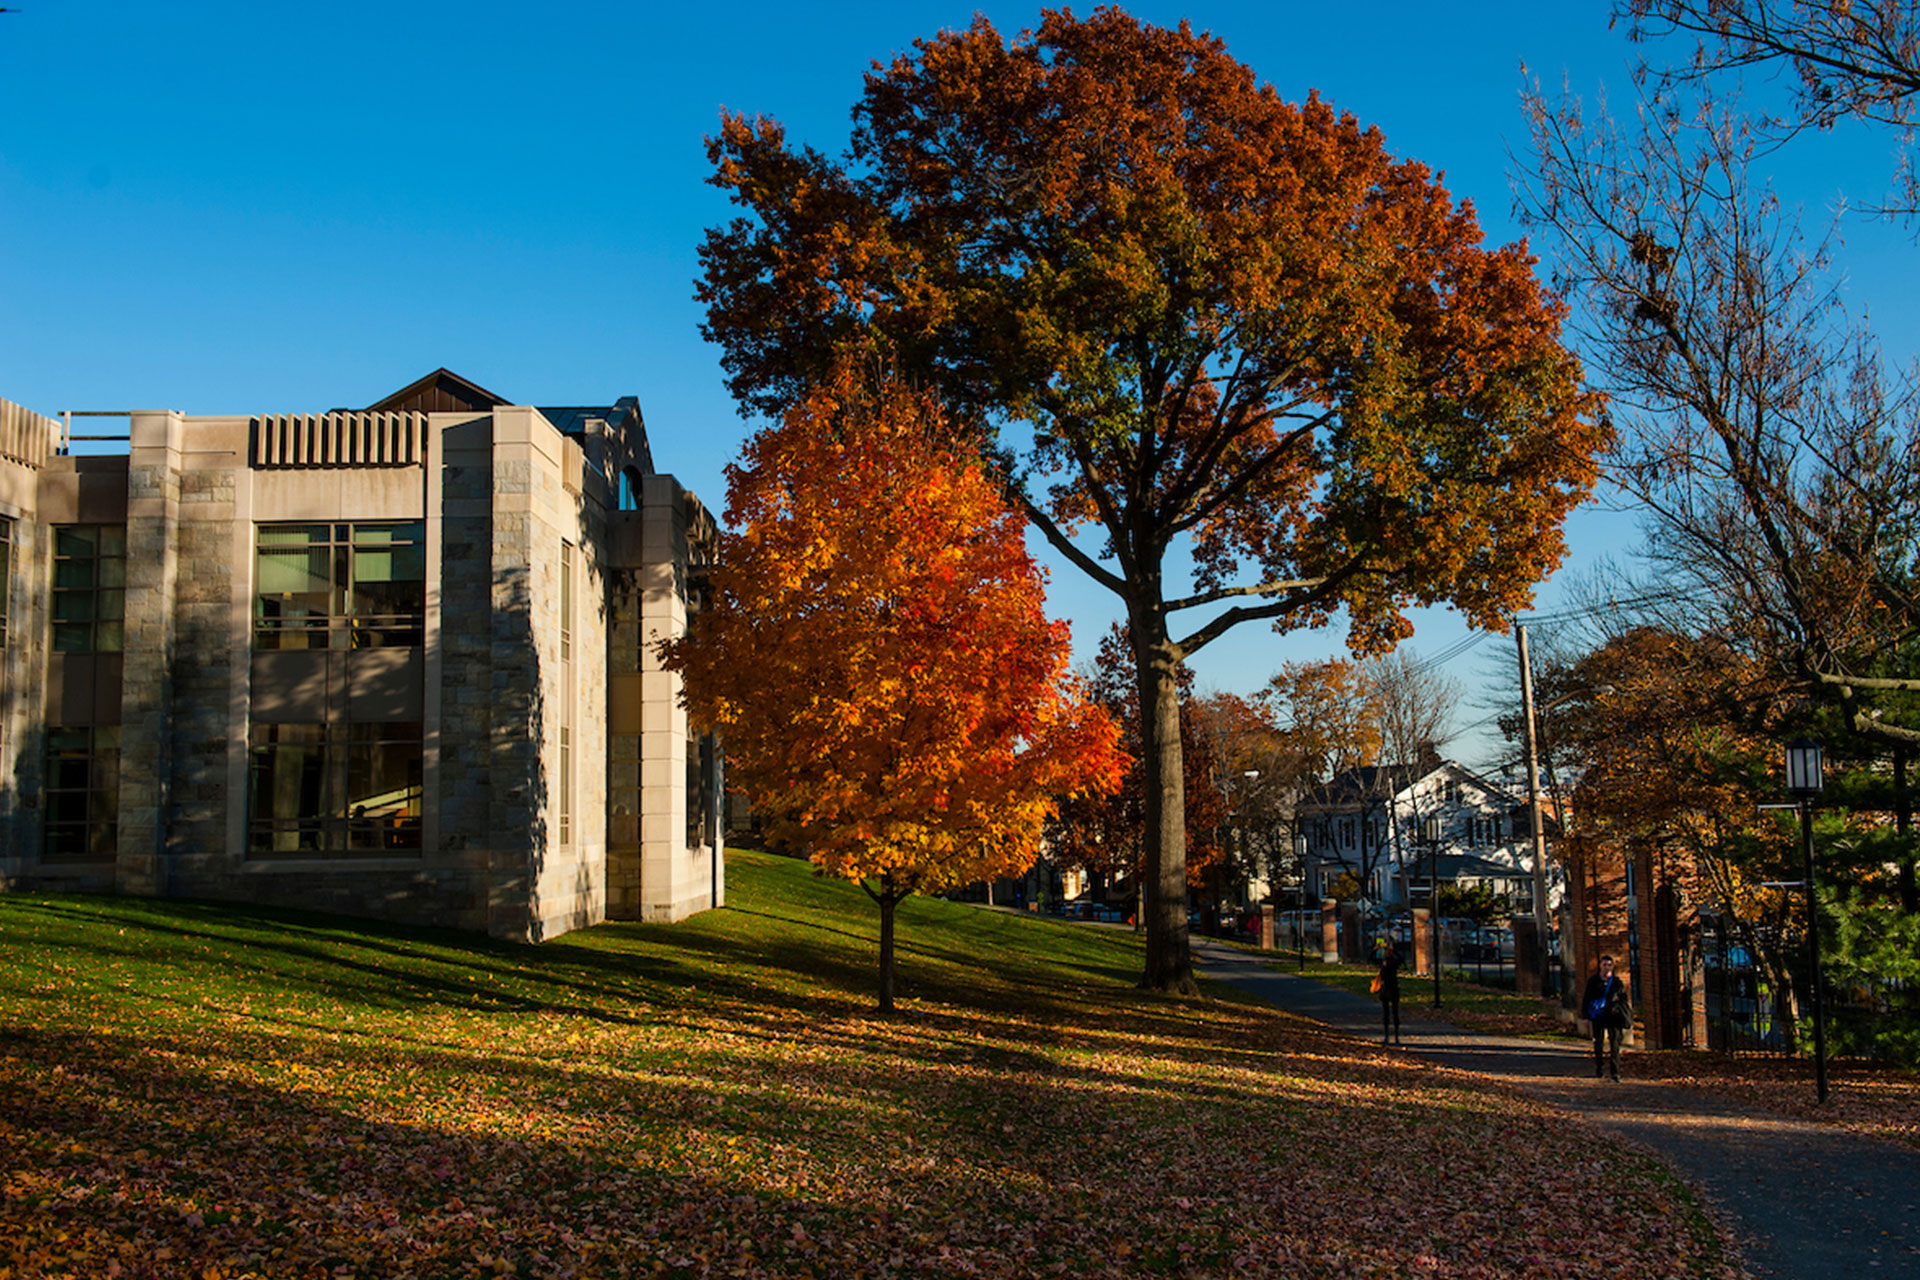 The Tufts campus in the fall